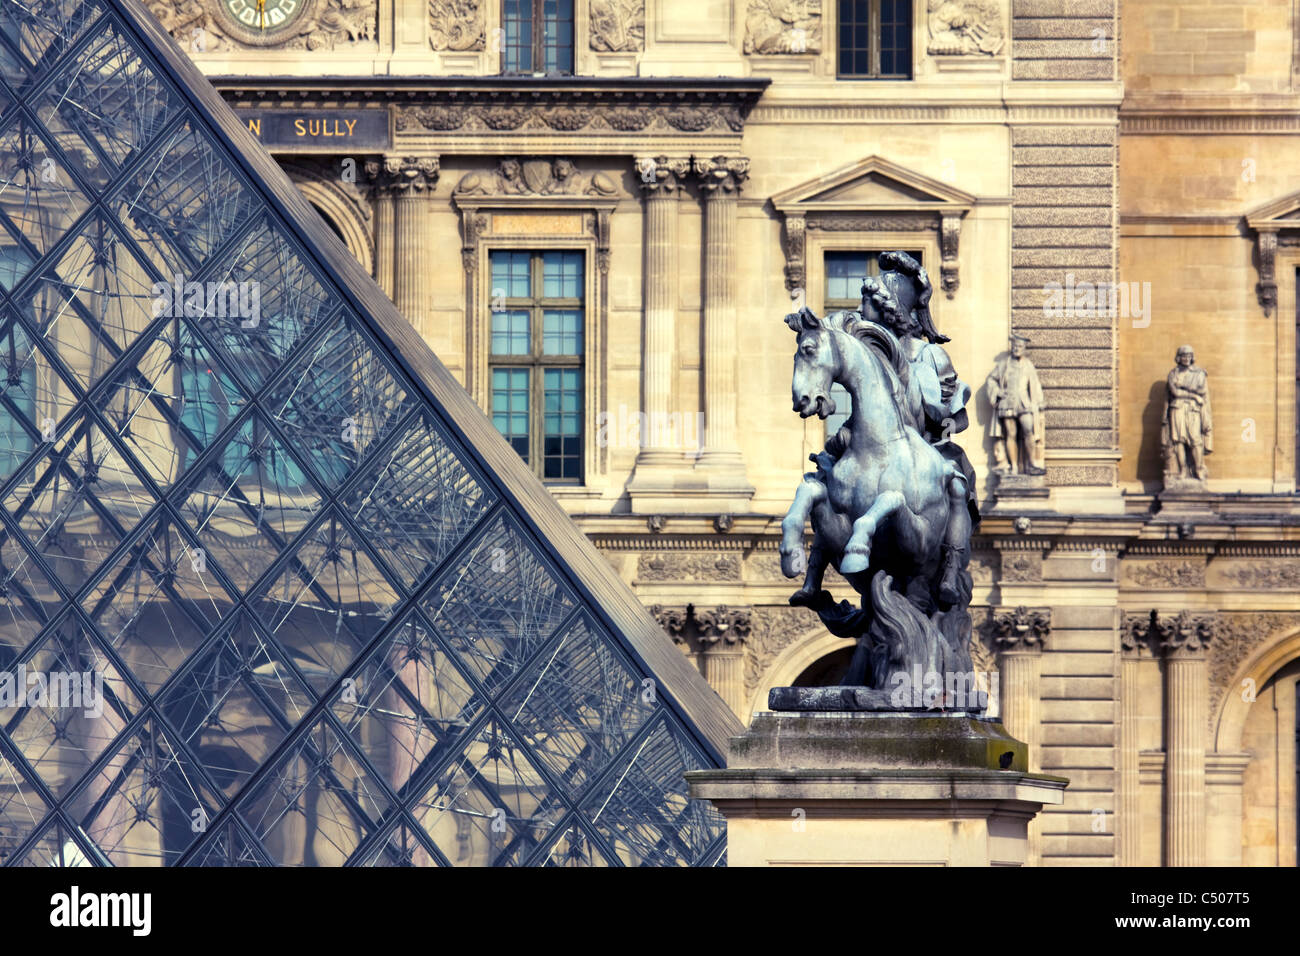 Equestrian statue of Louis XIV in the courtyard of the Musée du Louvre, Paris, France. Stock Photo